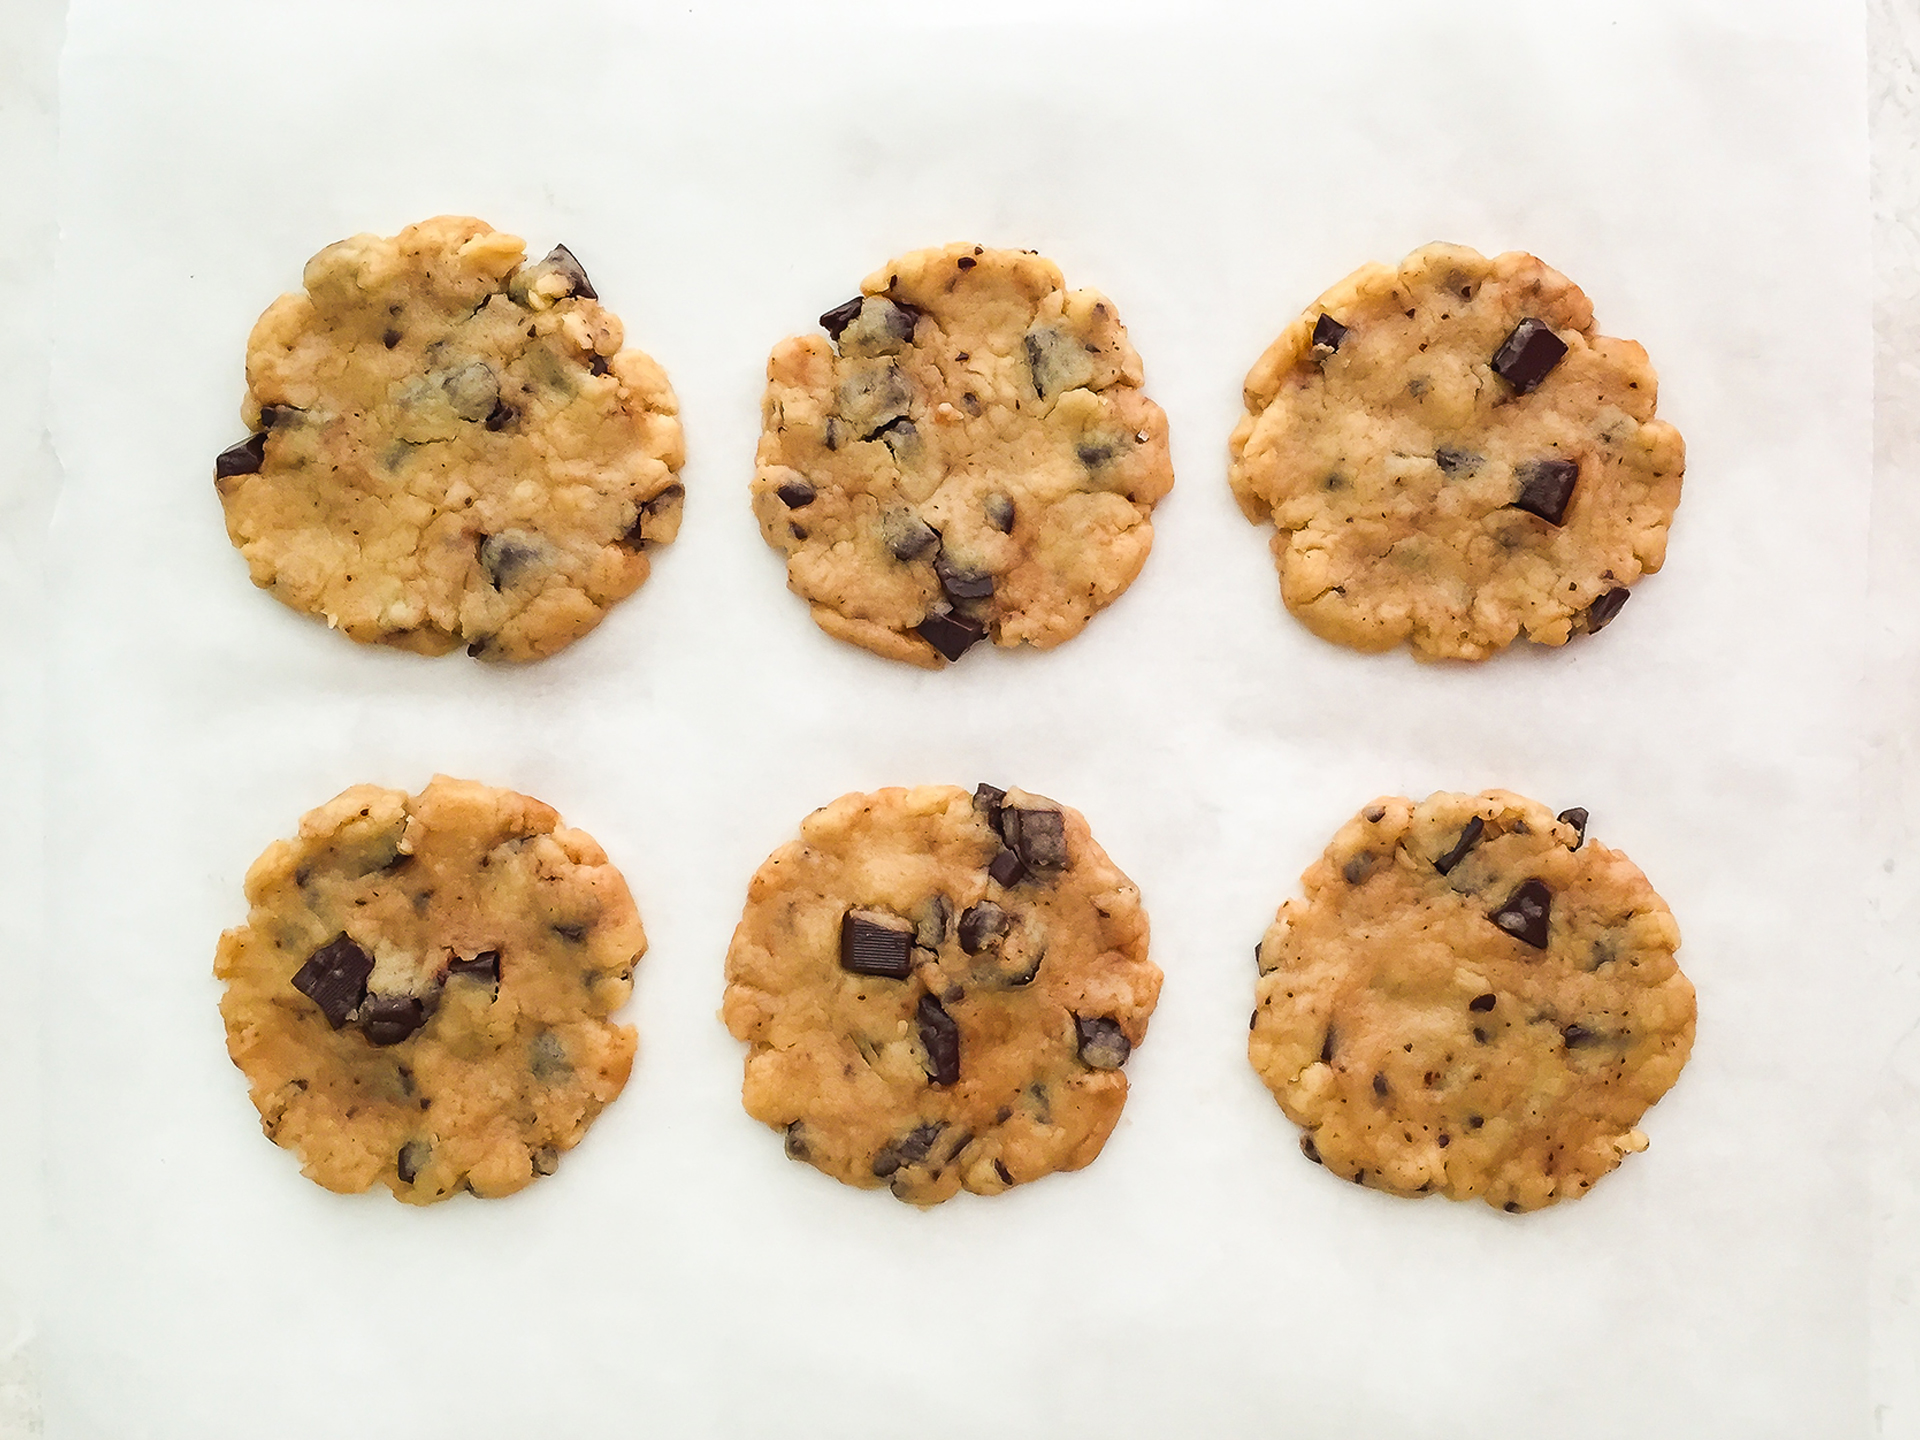 Step 3.2 of Gluten Free Oat Flour Chocolate Chip Cookies